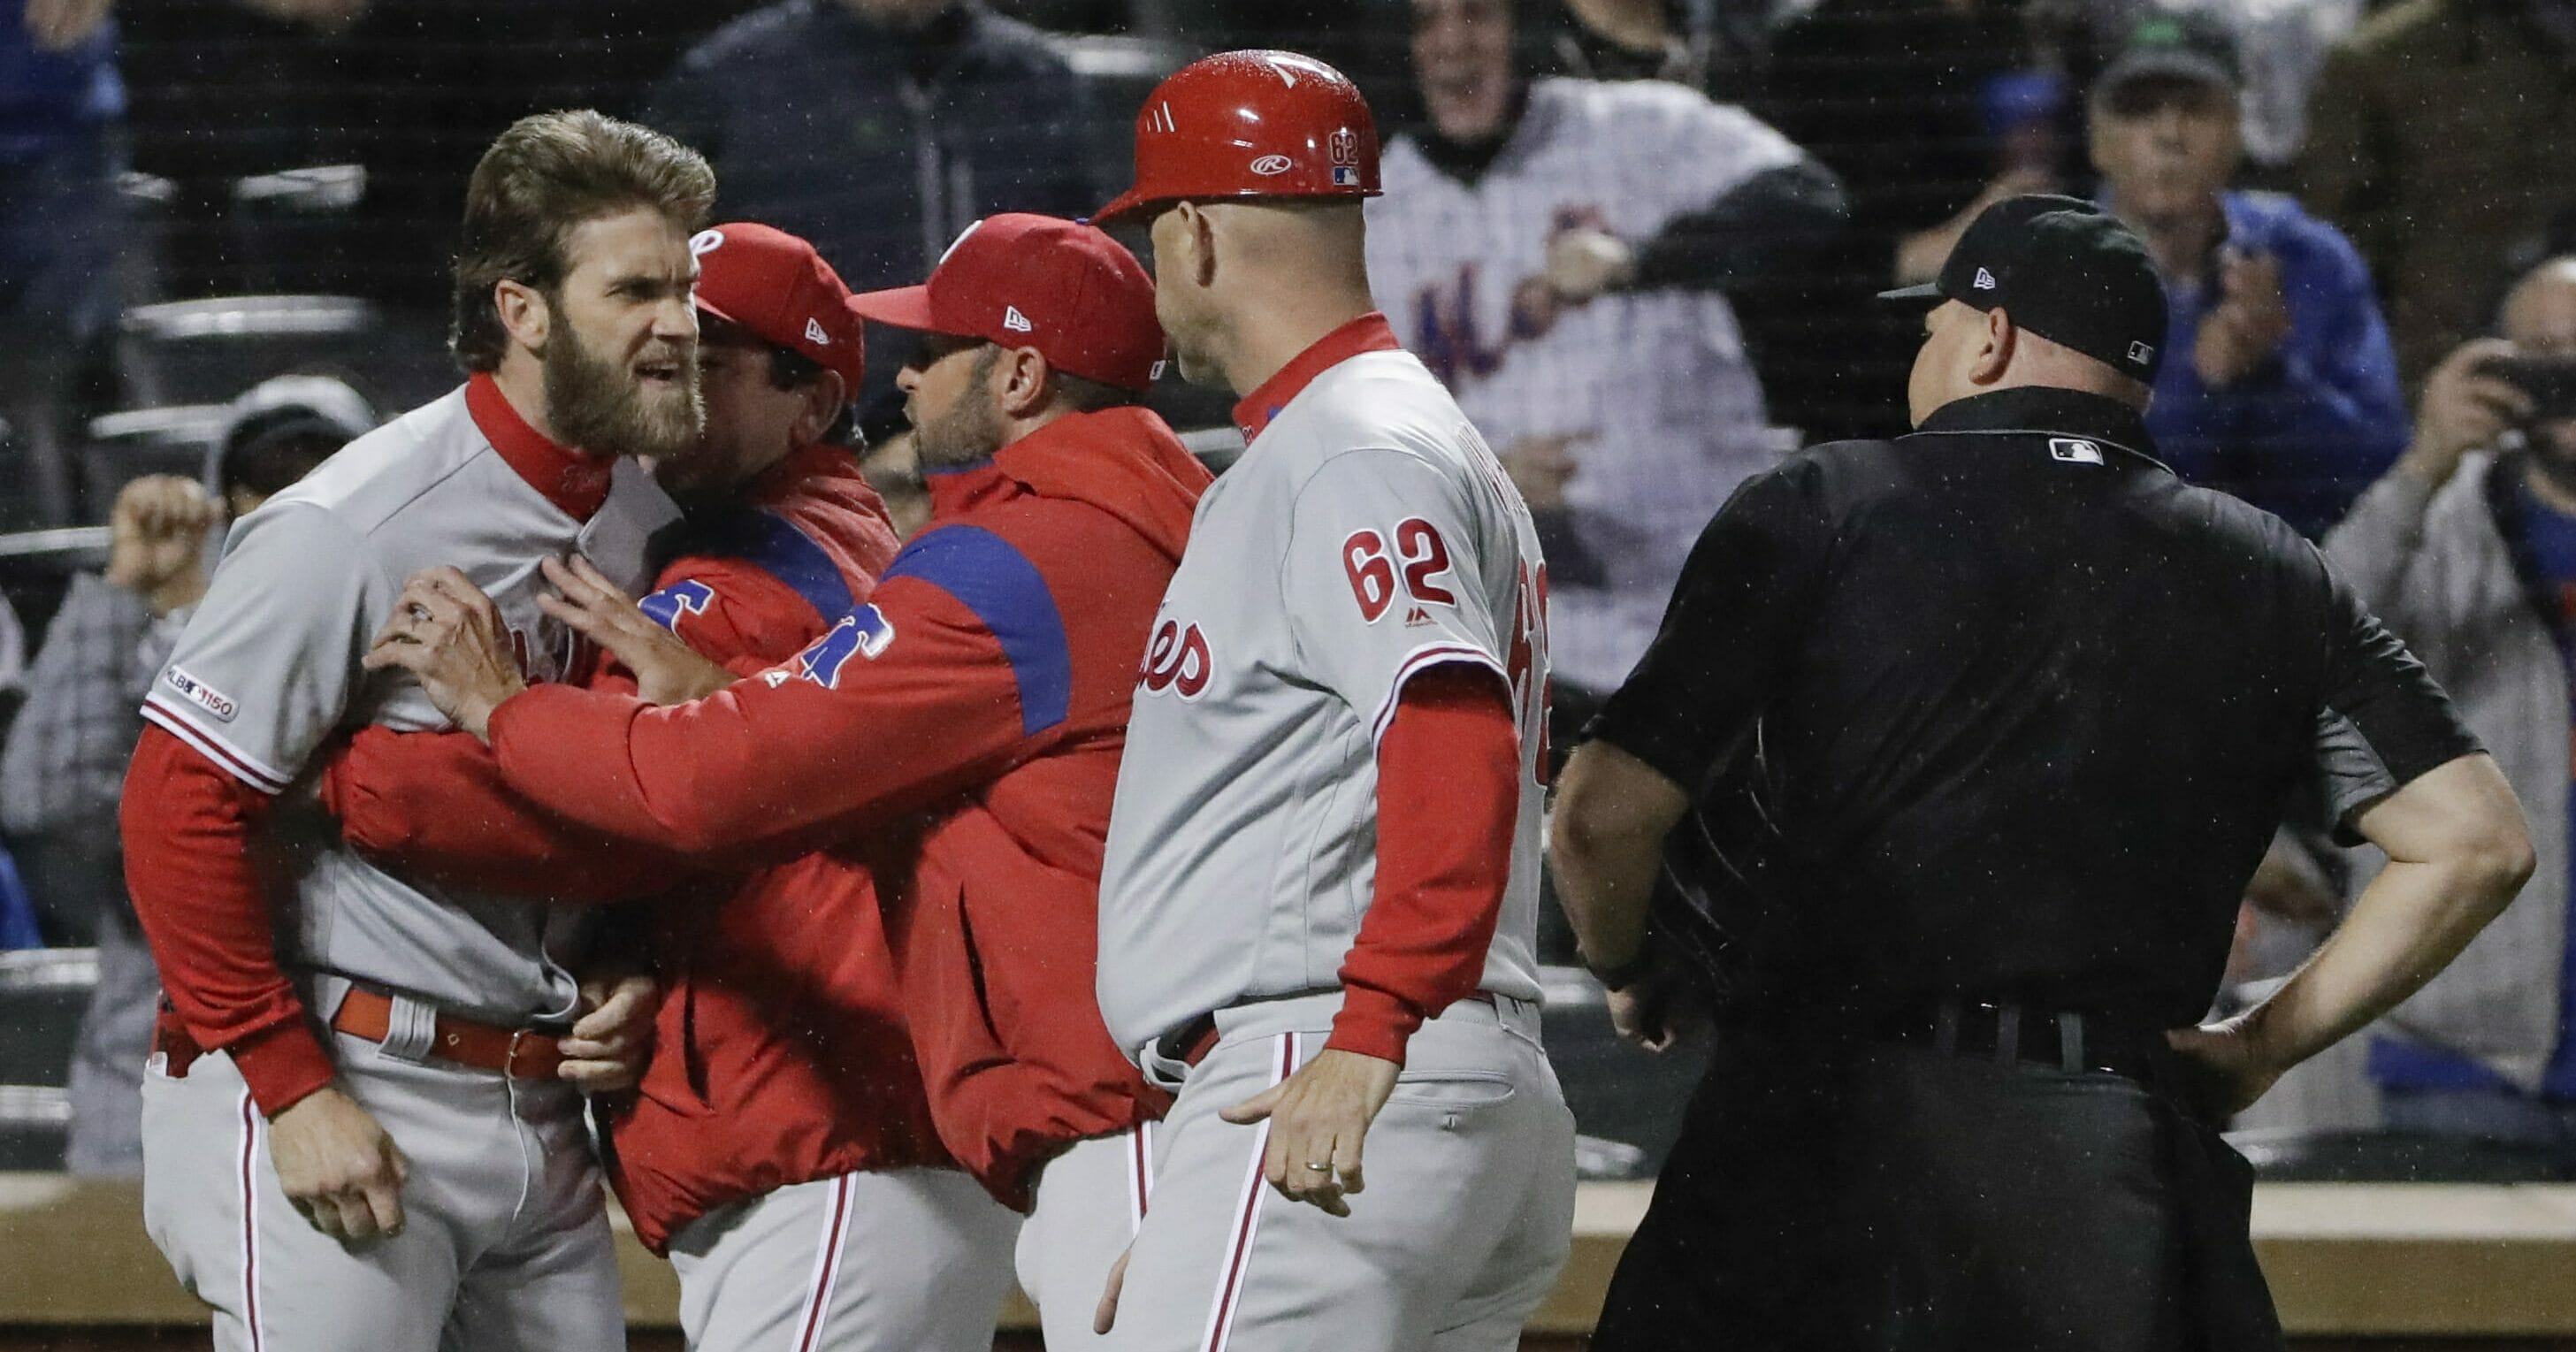 Philadelphia Phillies' Bryce Harper, left, is restrained while arguing with umpire Mark Carlson, right, during the fourth inning of a baseball game against the New York Mets, Monday, April 22, 2019, in New York.